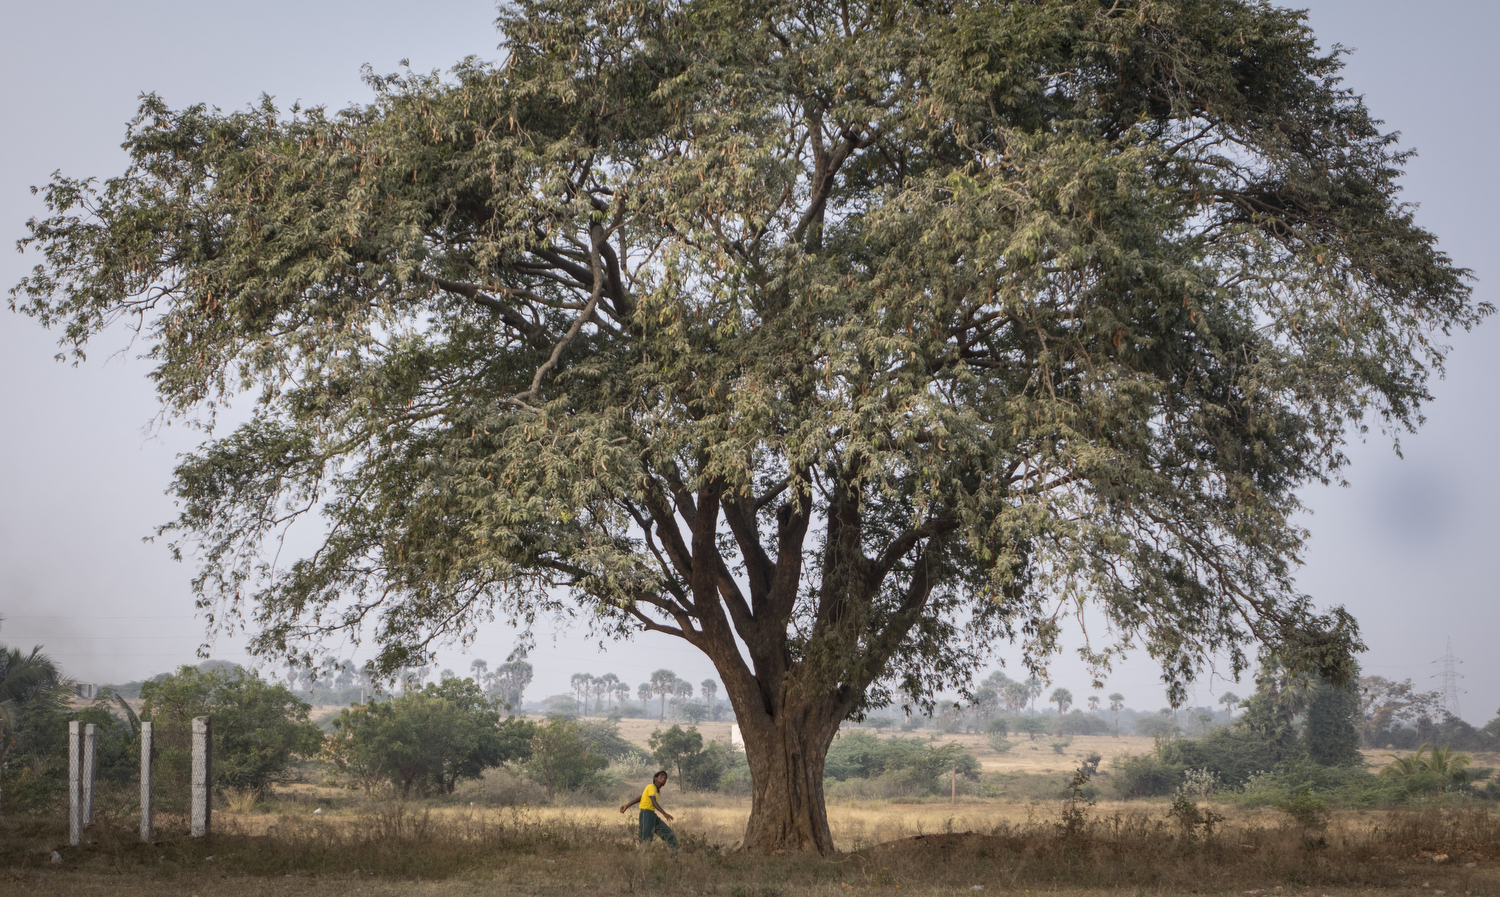 Moses, a boy in standard six at GPS, throws stones at a 130-year-old fruit tree. The stones will knock down the tamarind, a fruit that blossoms only two or three times a year. His mother will use the tamarind to cook in the curry for his family's lunch.  Akash Praveen. G